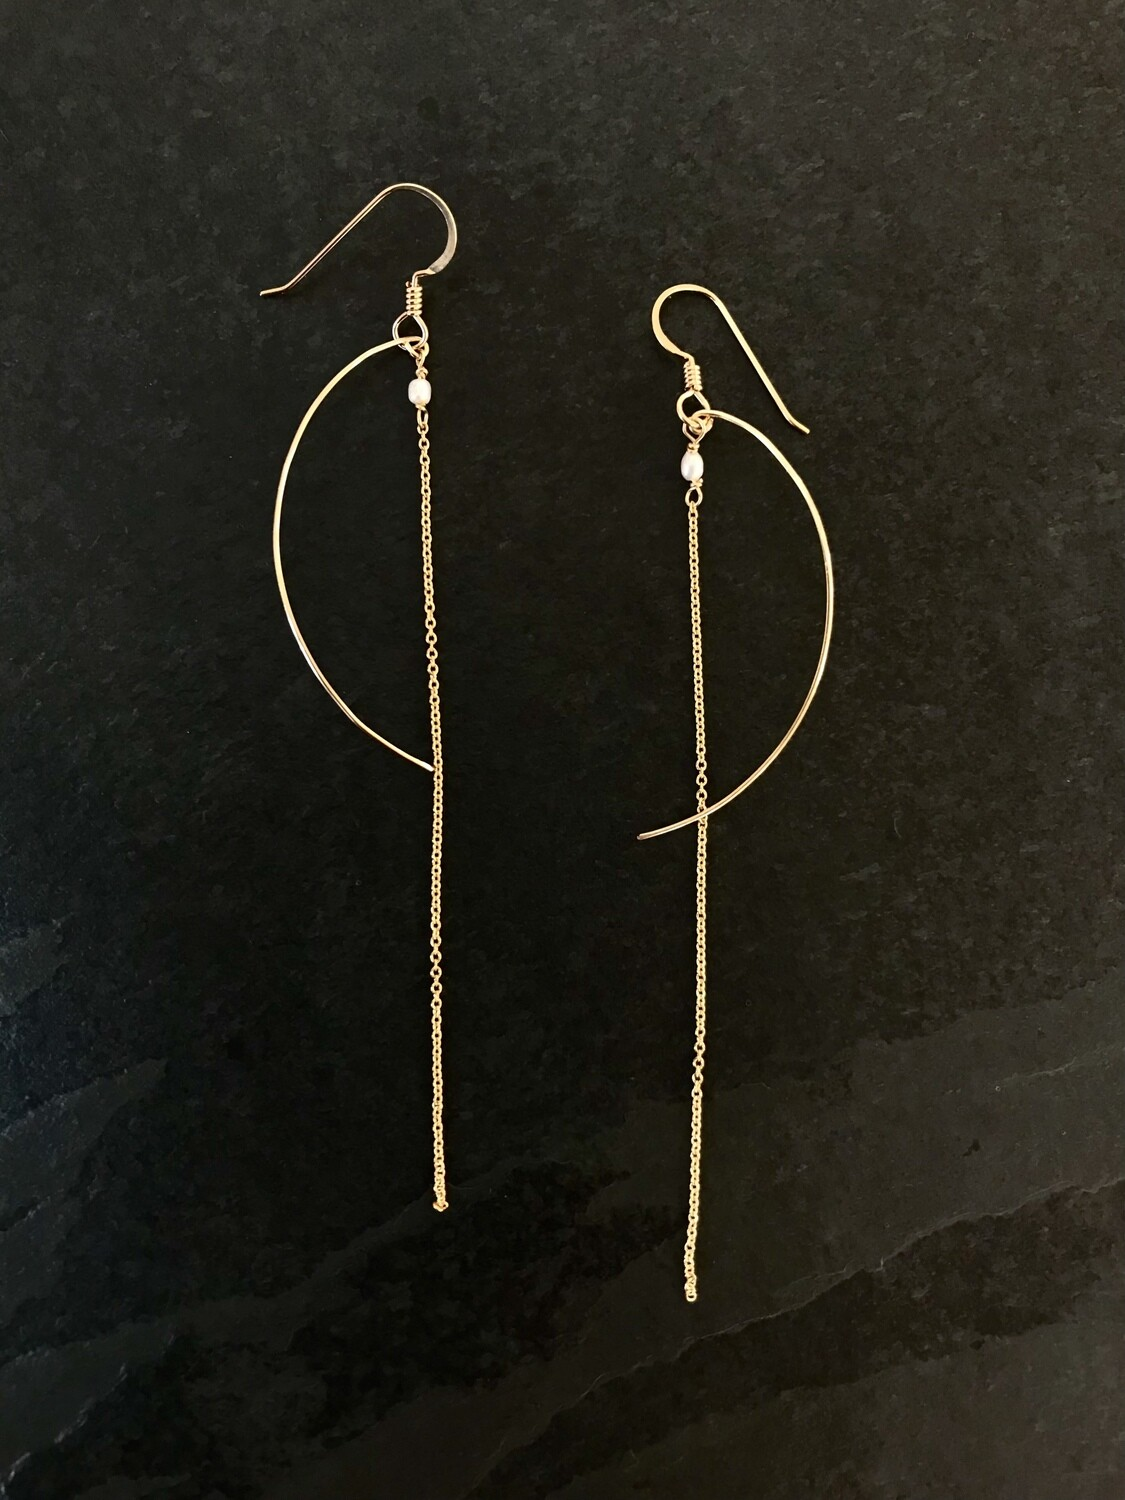 Venus Rice Pearl Gold-Filled Duster Earrings - GDFDVE20